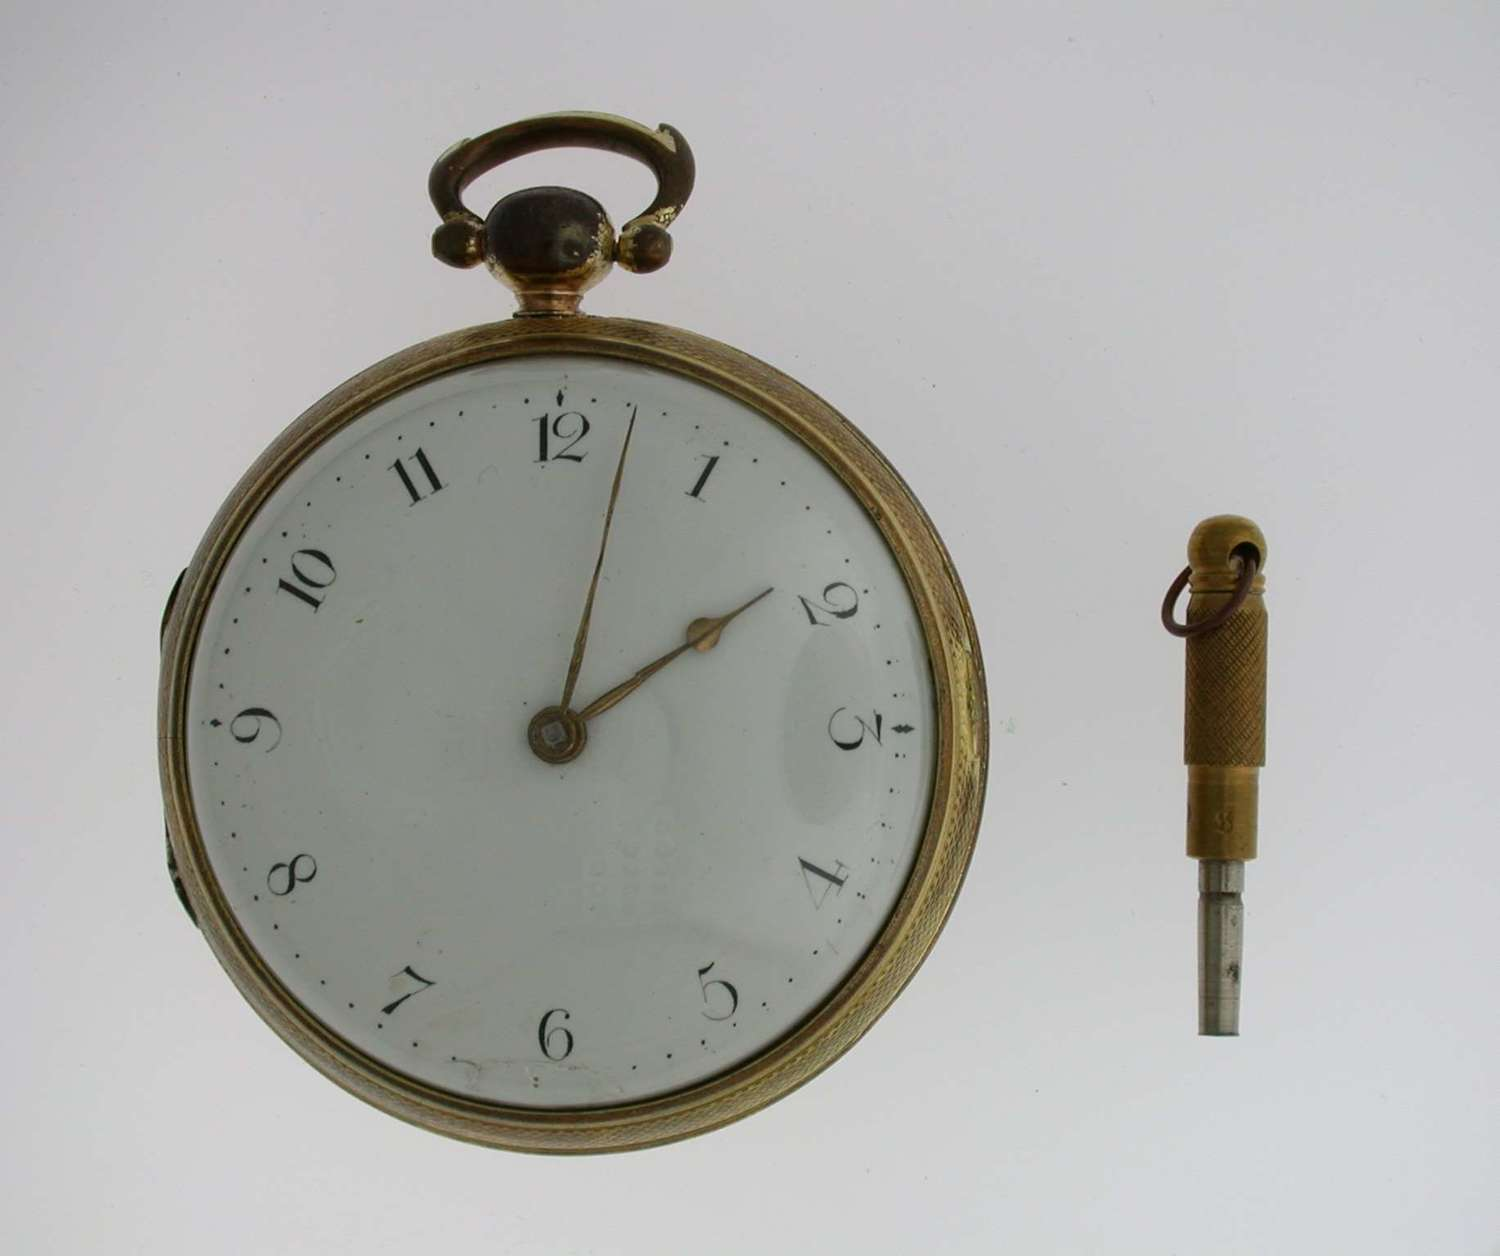 Rare Verge Gold Plated Open Face Pocket Watch  Swiss 1800